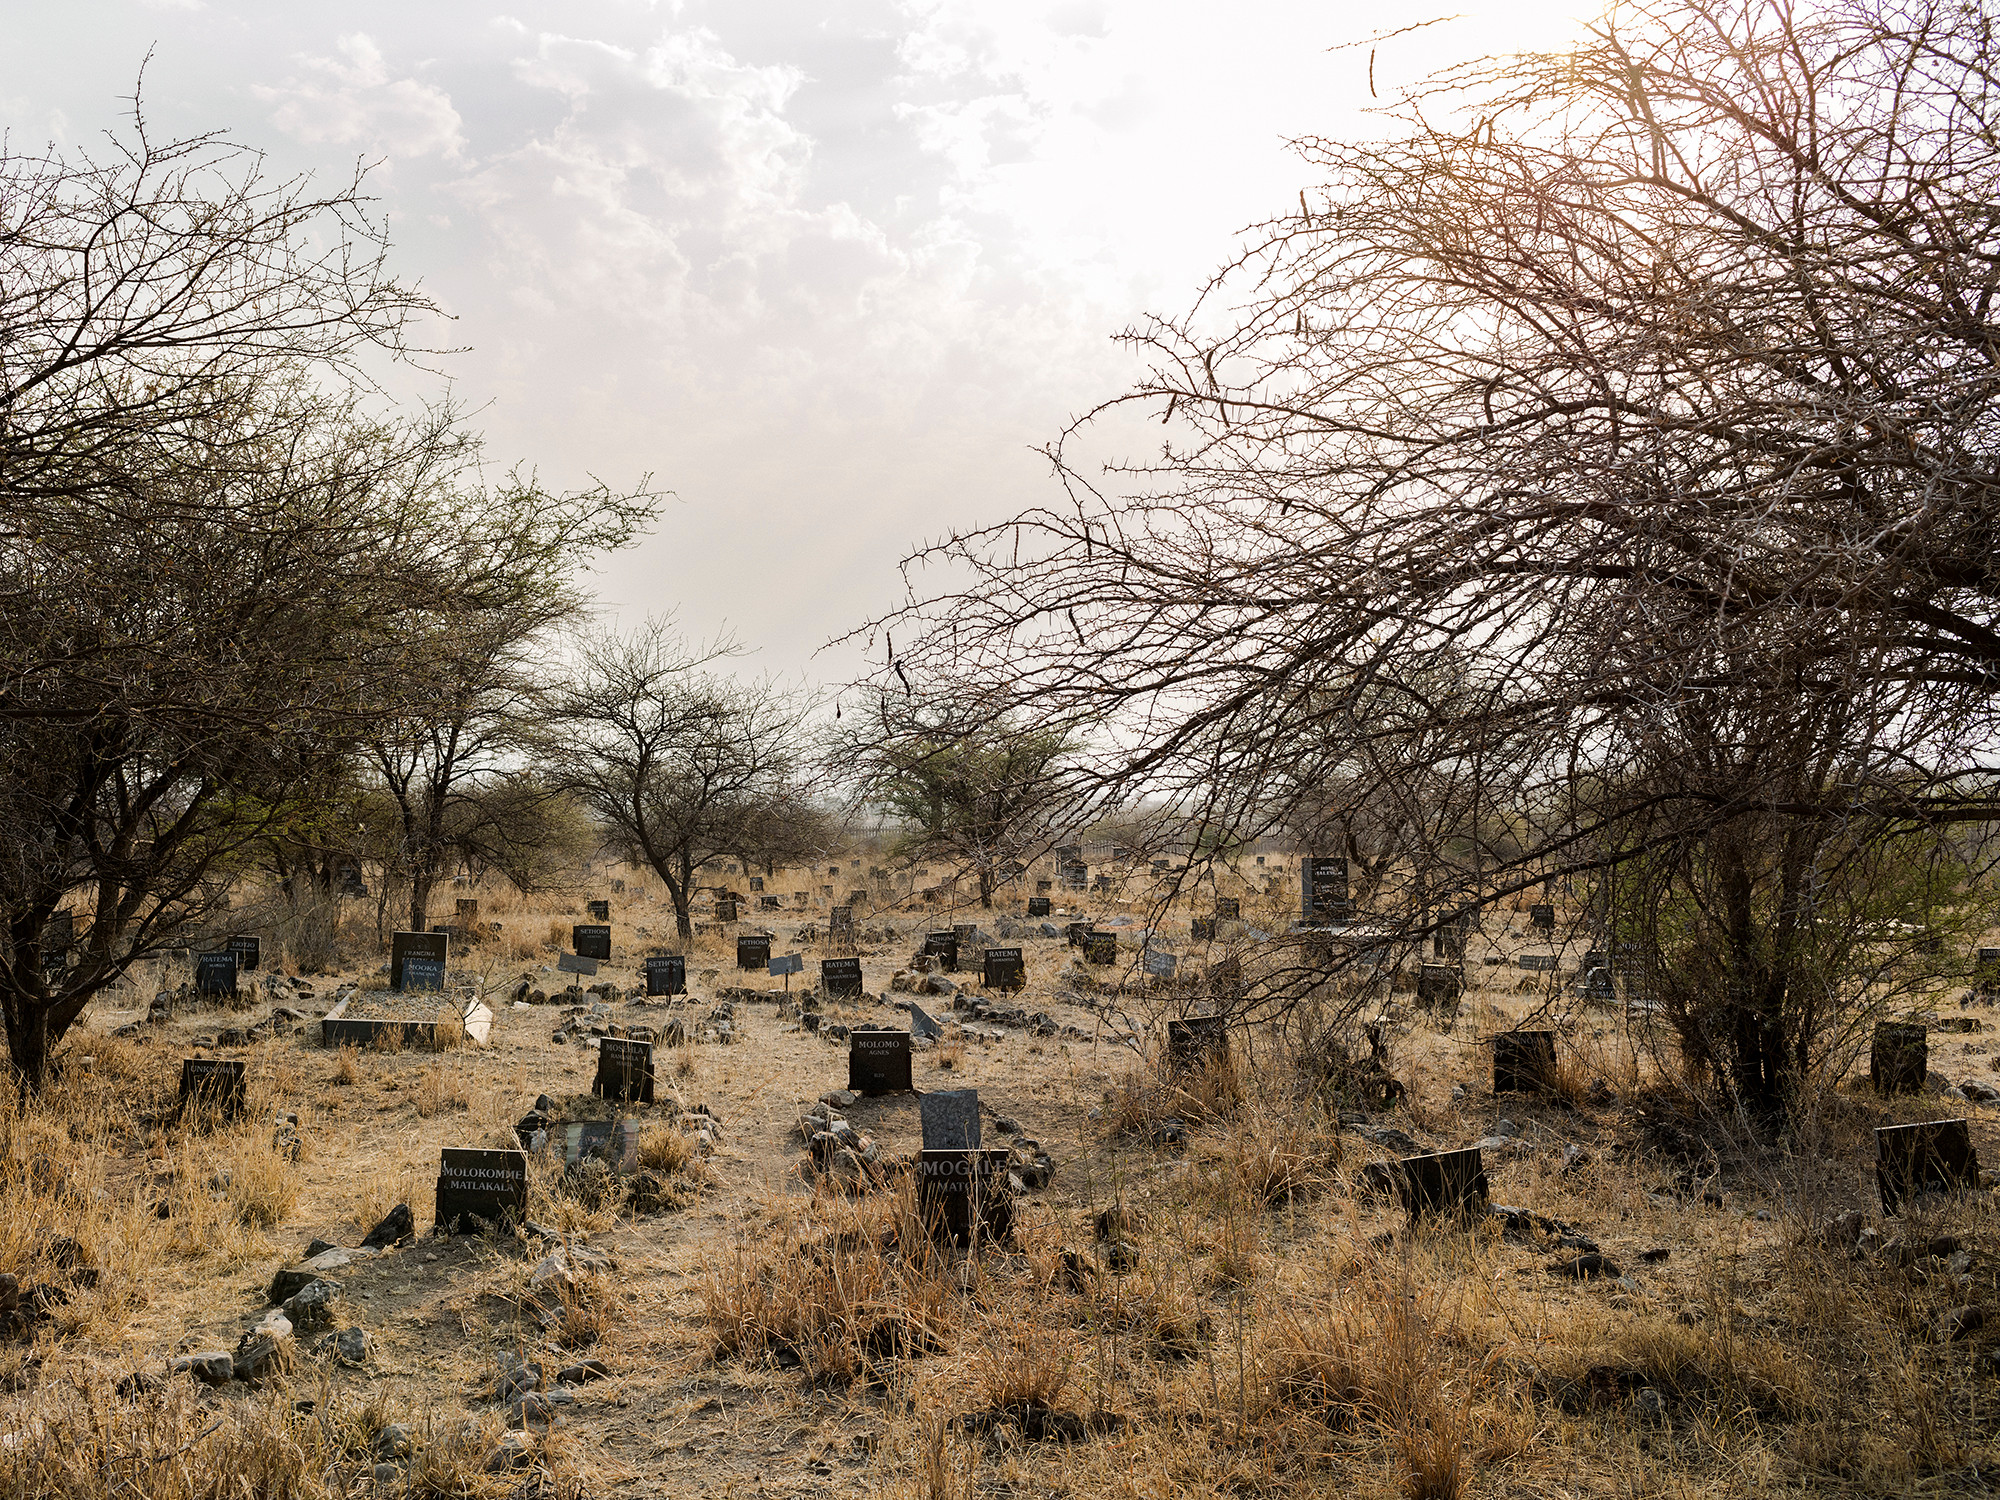 Relocated graves, Ga-Mashiane cemetery, Ga-Masenya, Mapela, Limpopo, Northern Limb